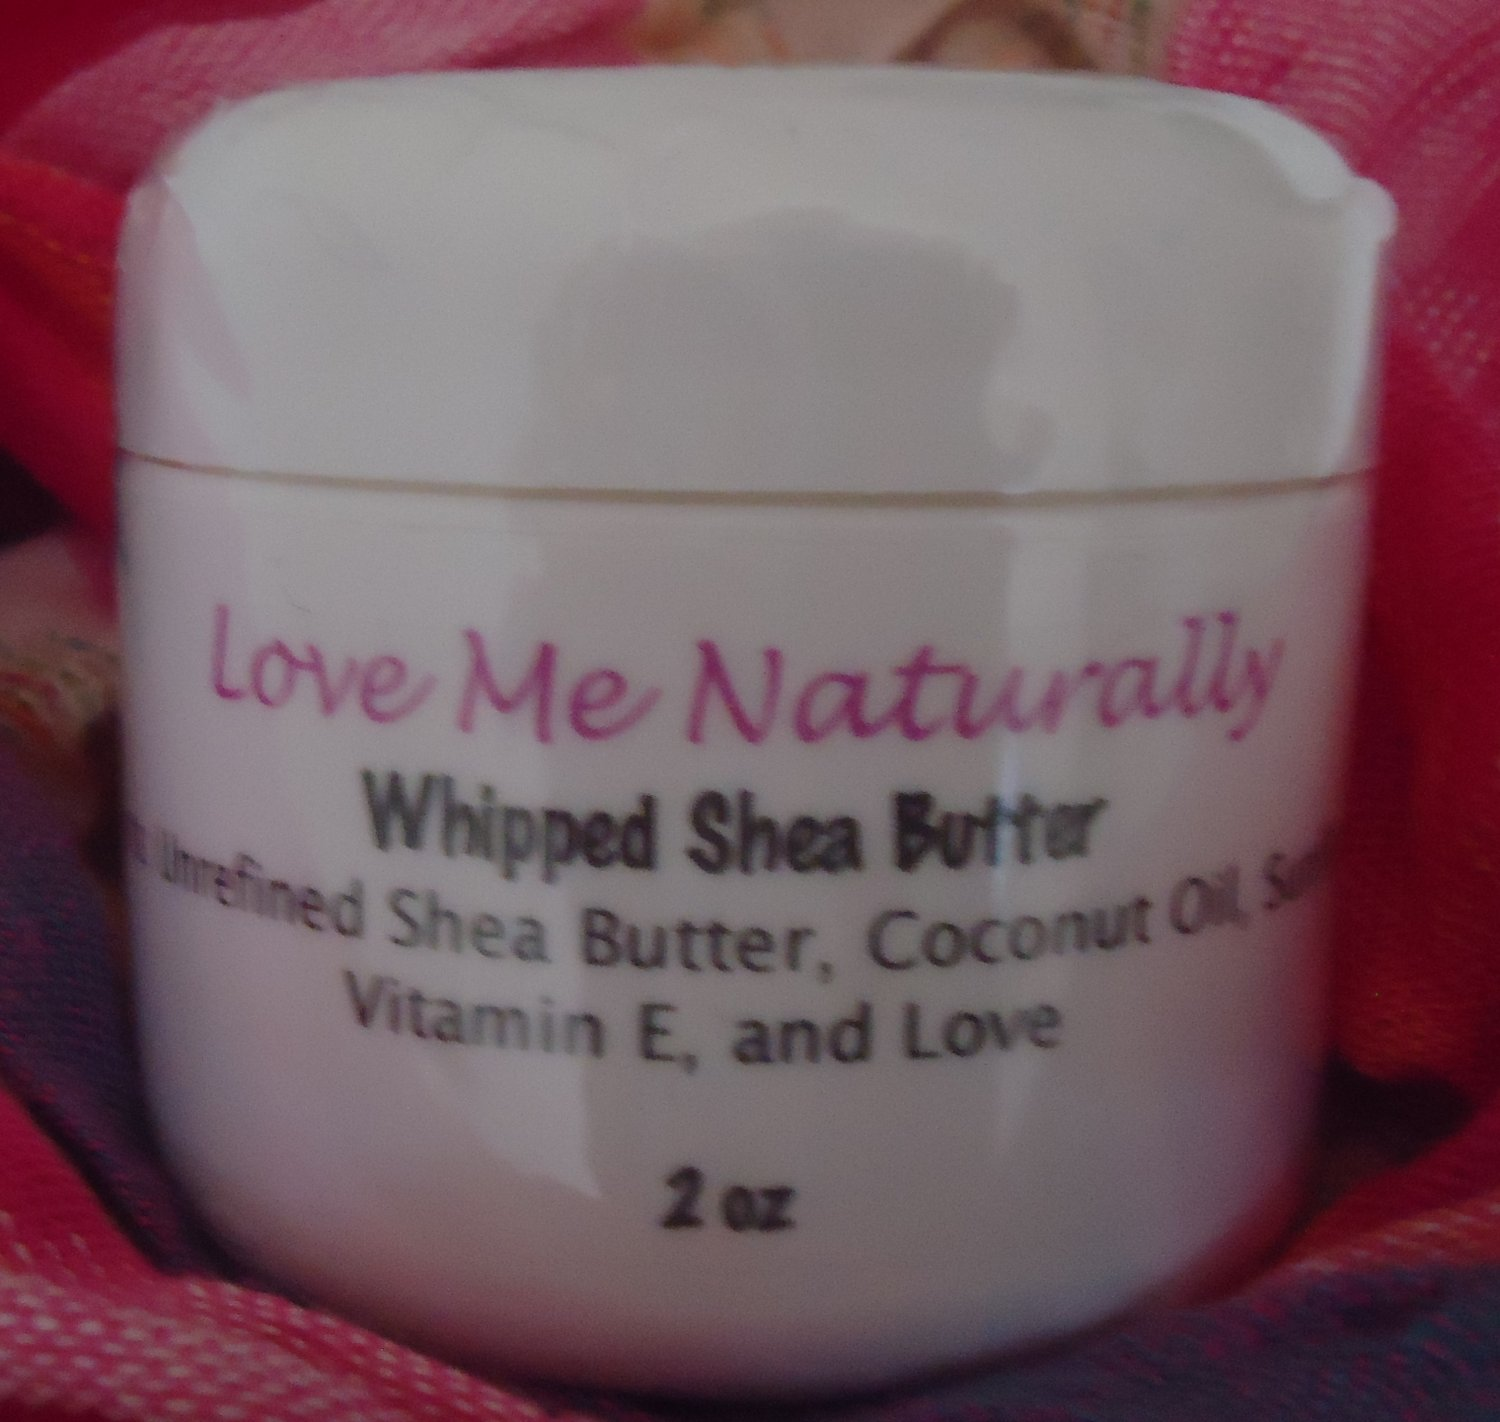 Whipped Shea Butter-NOT SHIPPED DURING HOT WEATHER MONTHS